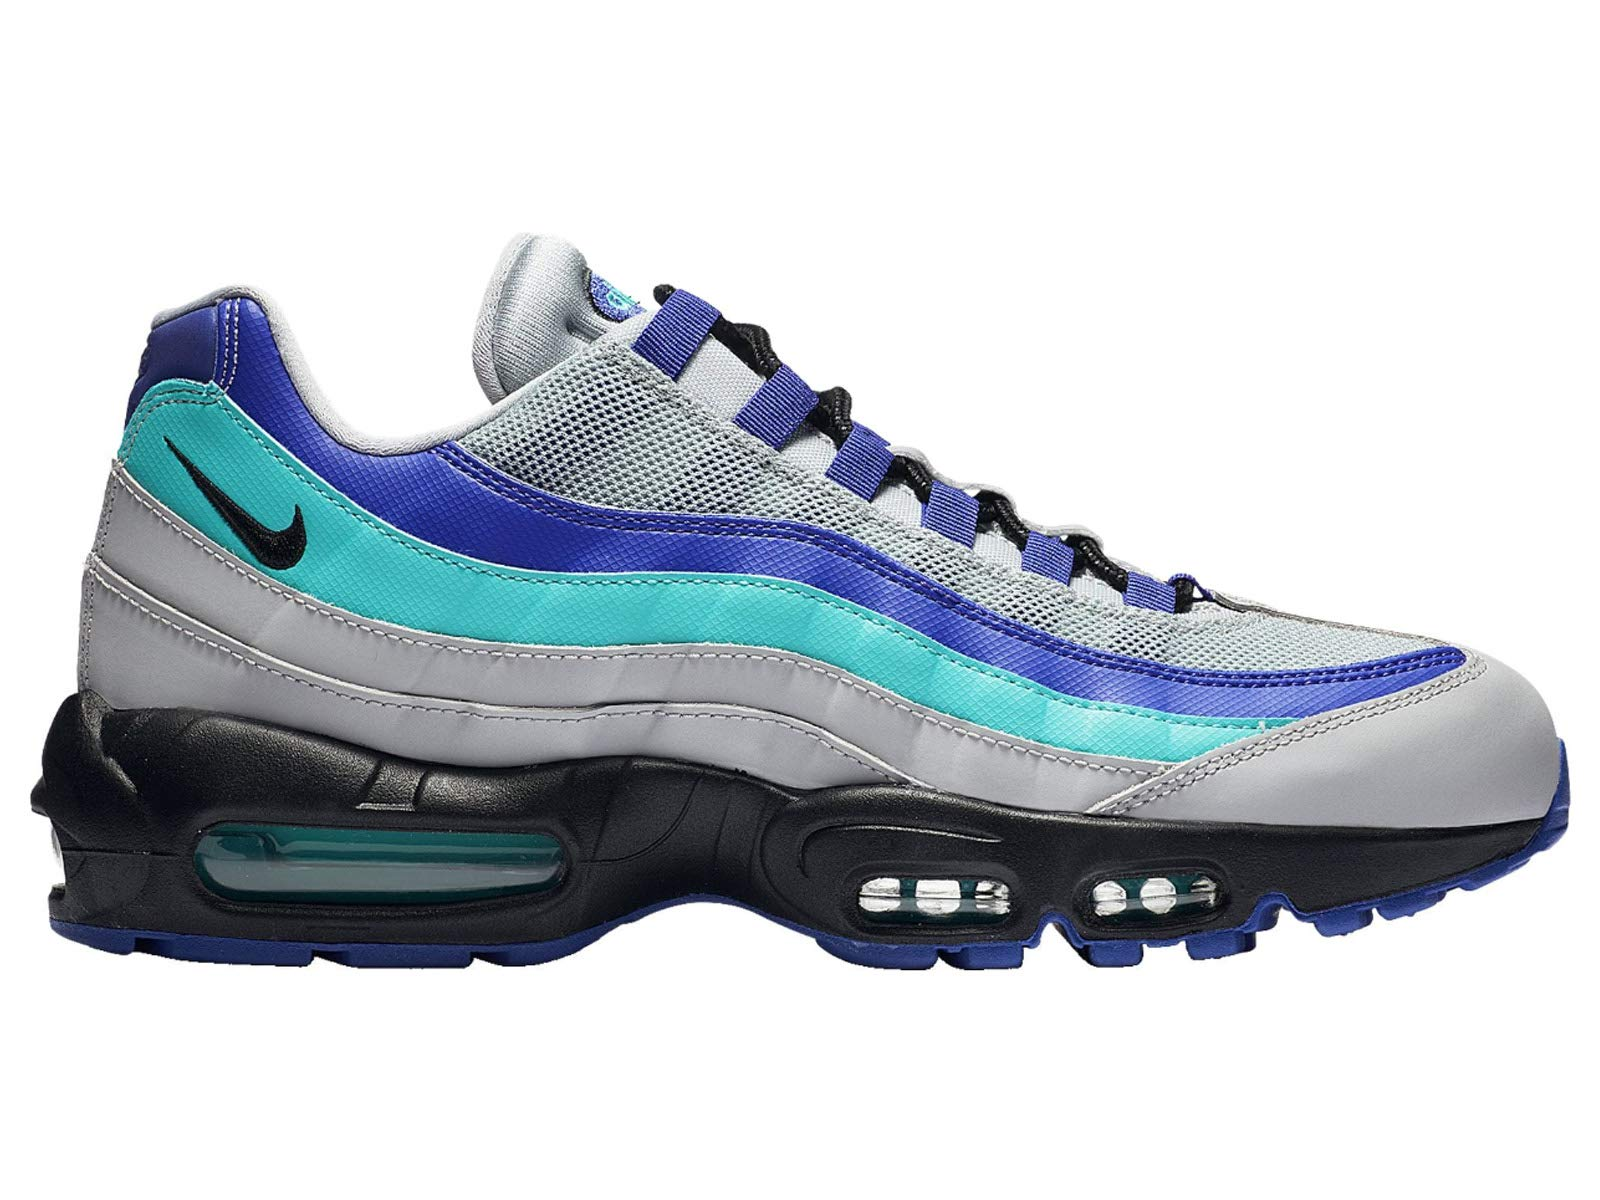 94eb1a4daeb Galleon - Nike Air Max 95 Og Mens Style: AT2865-001 Size: 13